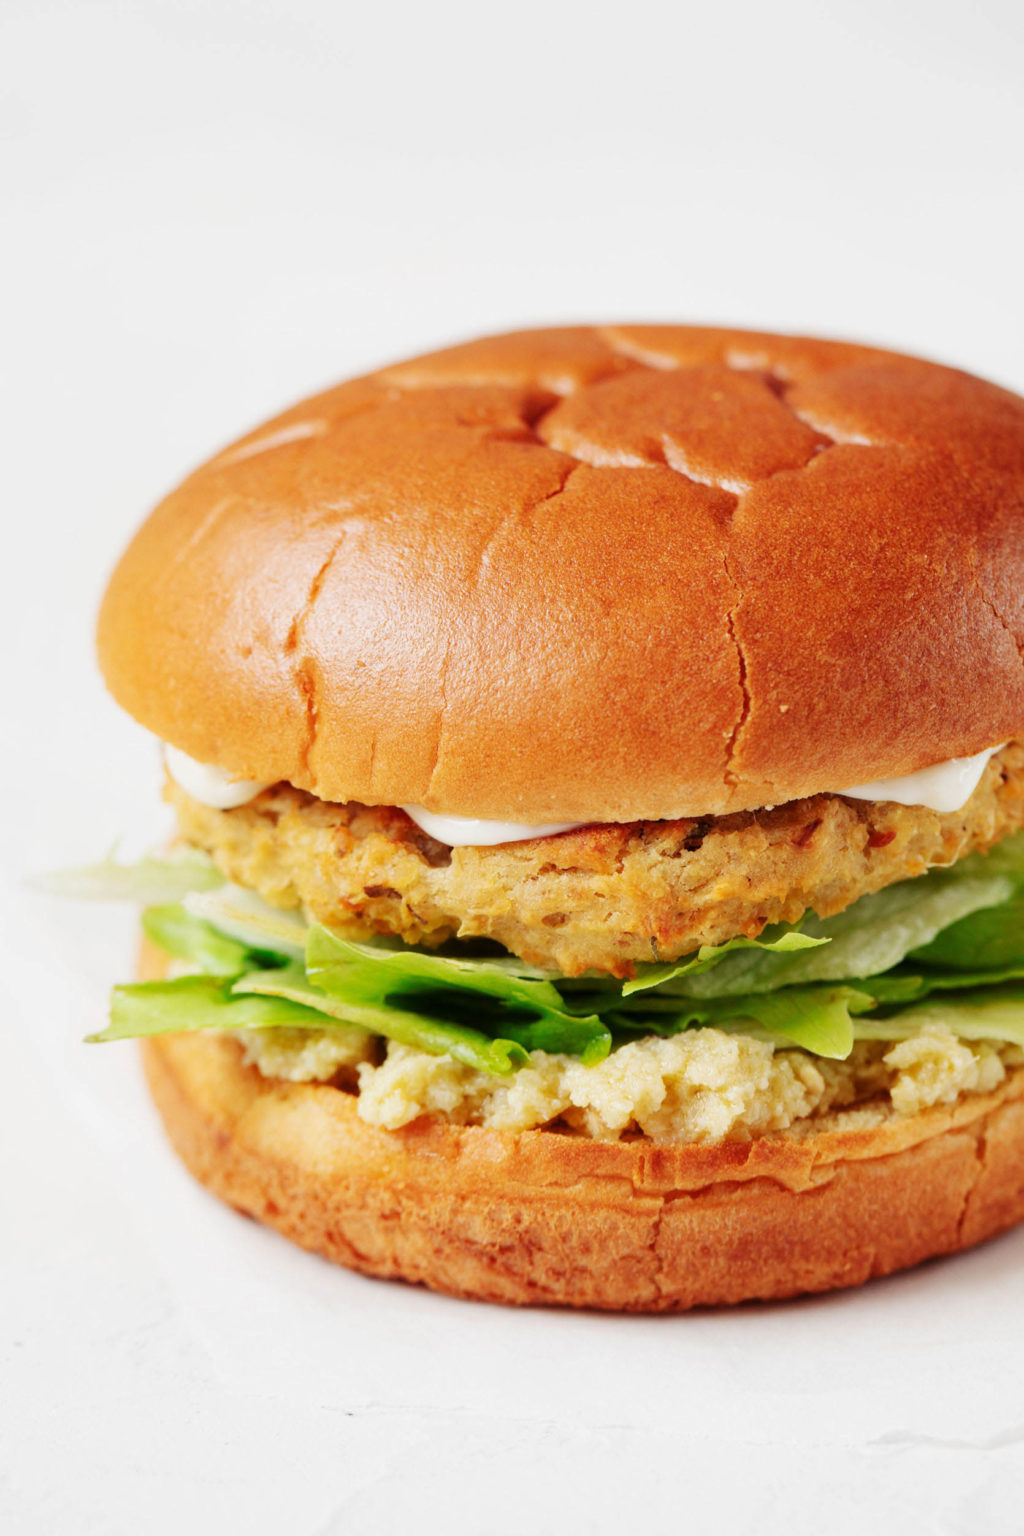 A close-up photograph of a plant-based patty, served on a fluffy bun with lettuce and a creamy spread.